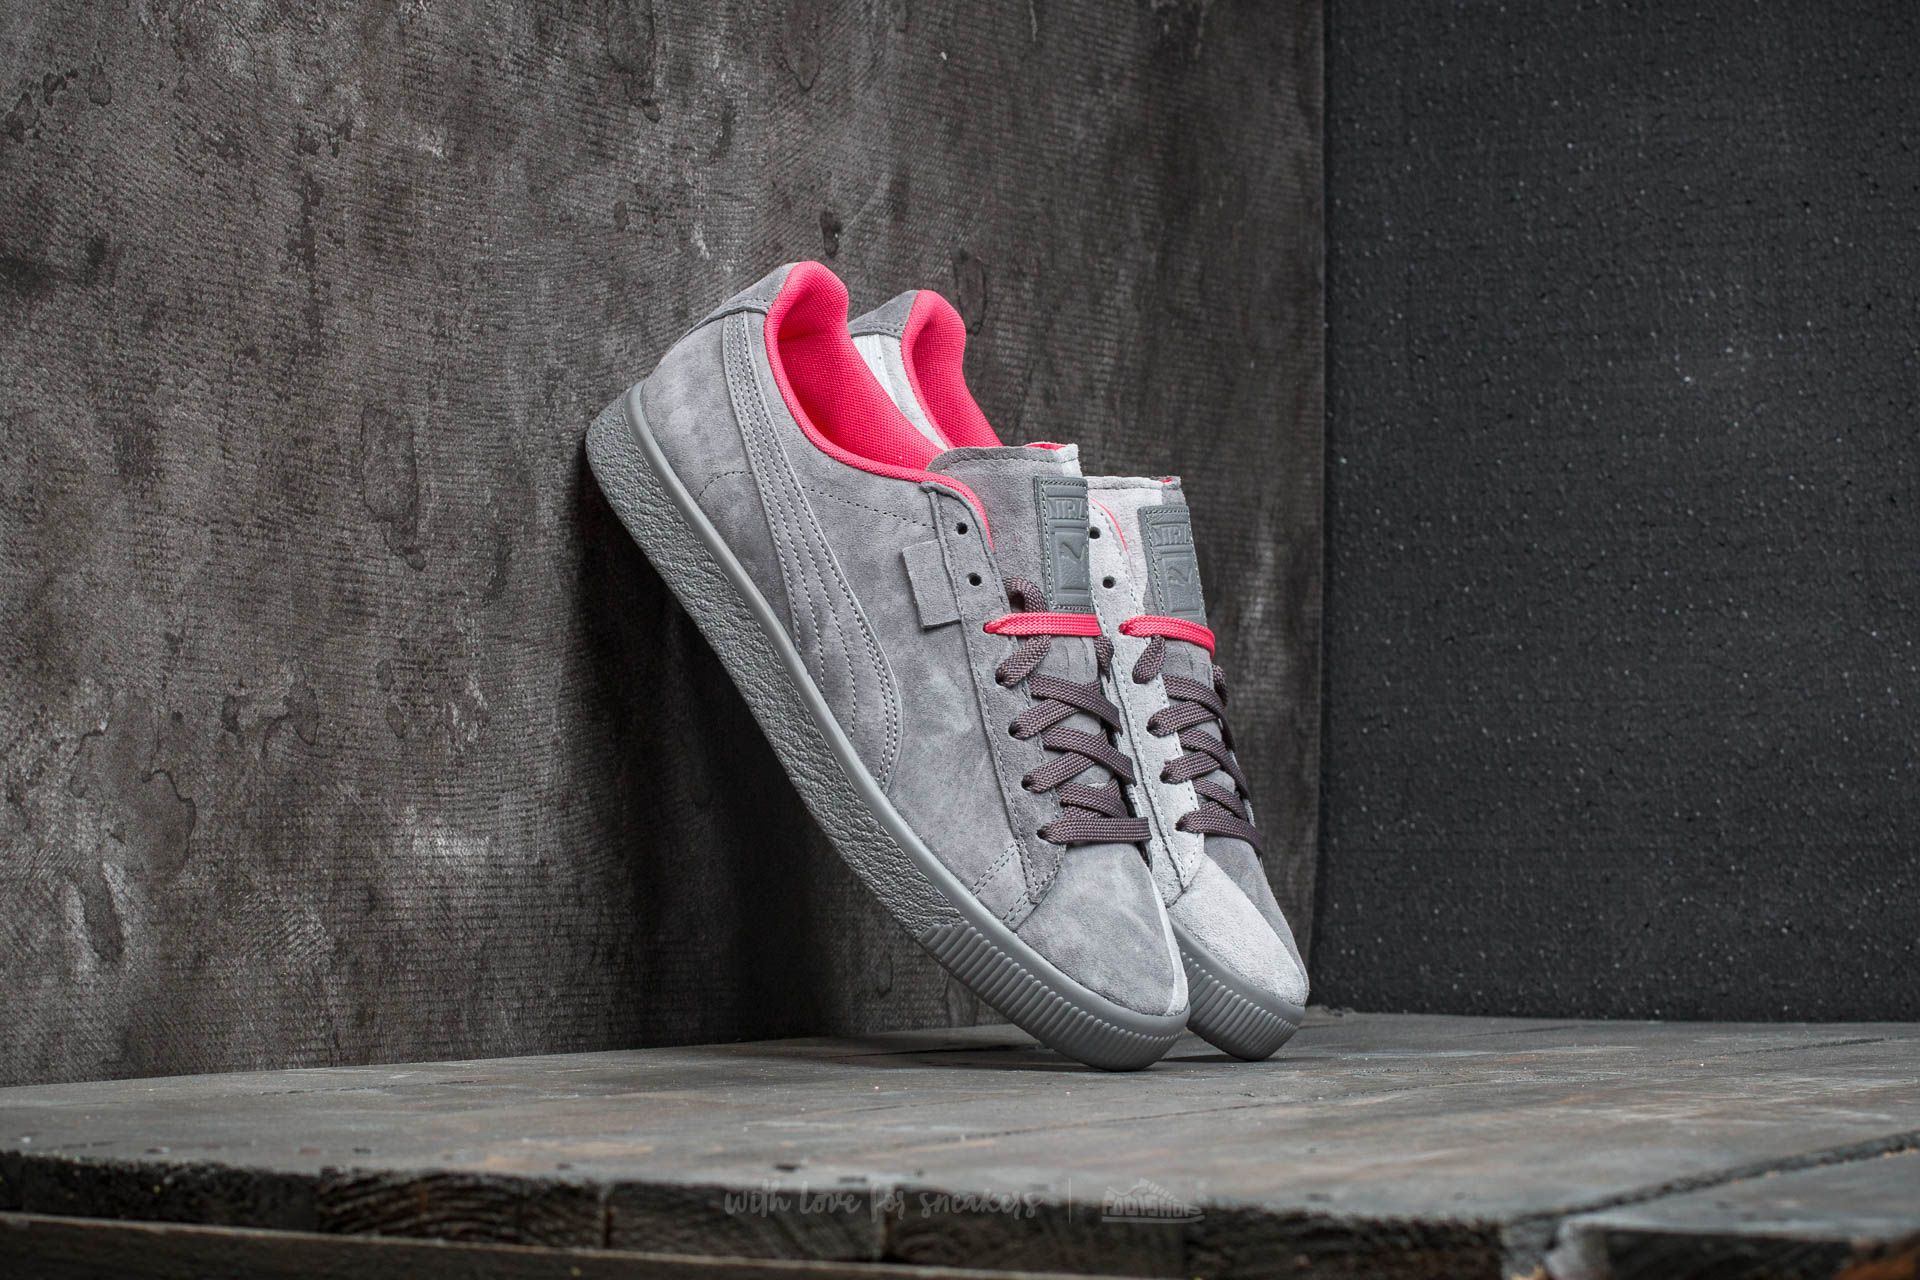 6be7322d22a3da Puma x Staple Clyde High Rise-Glacier Gray